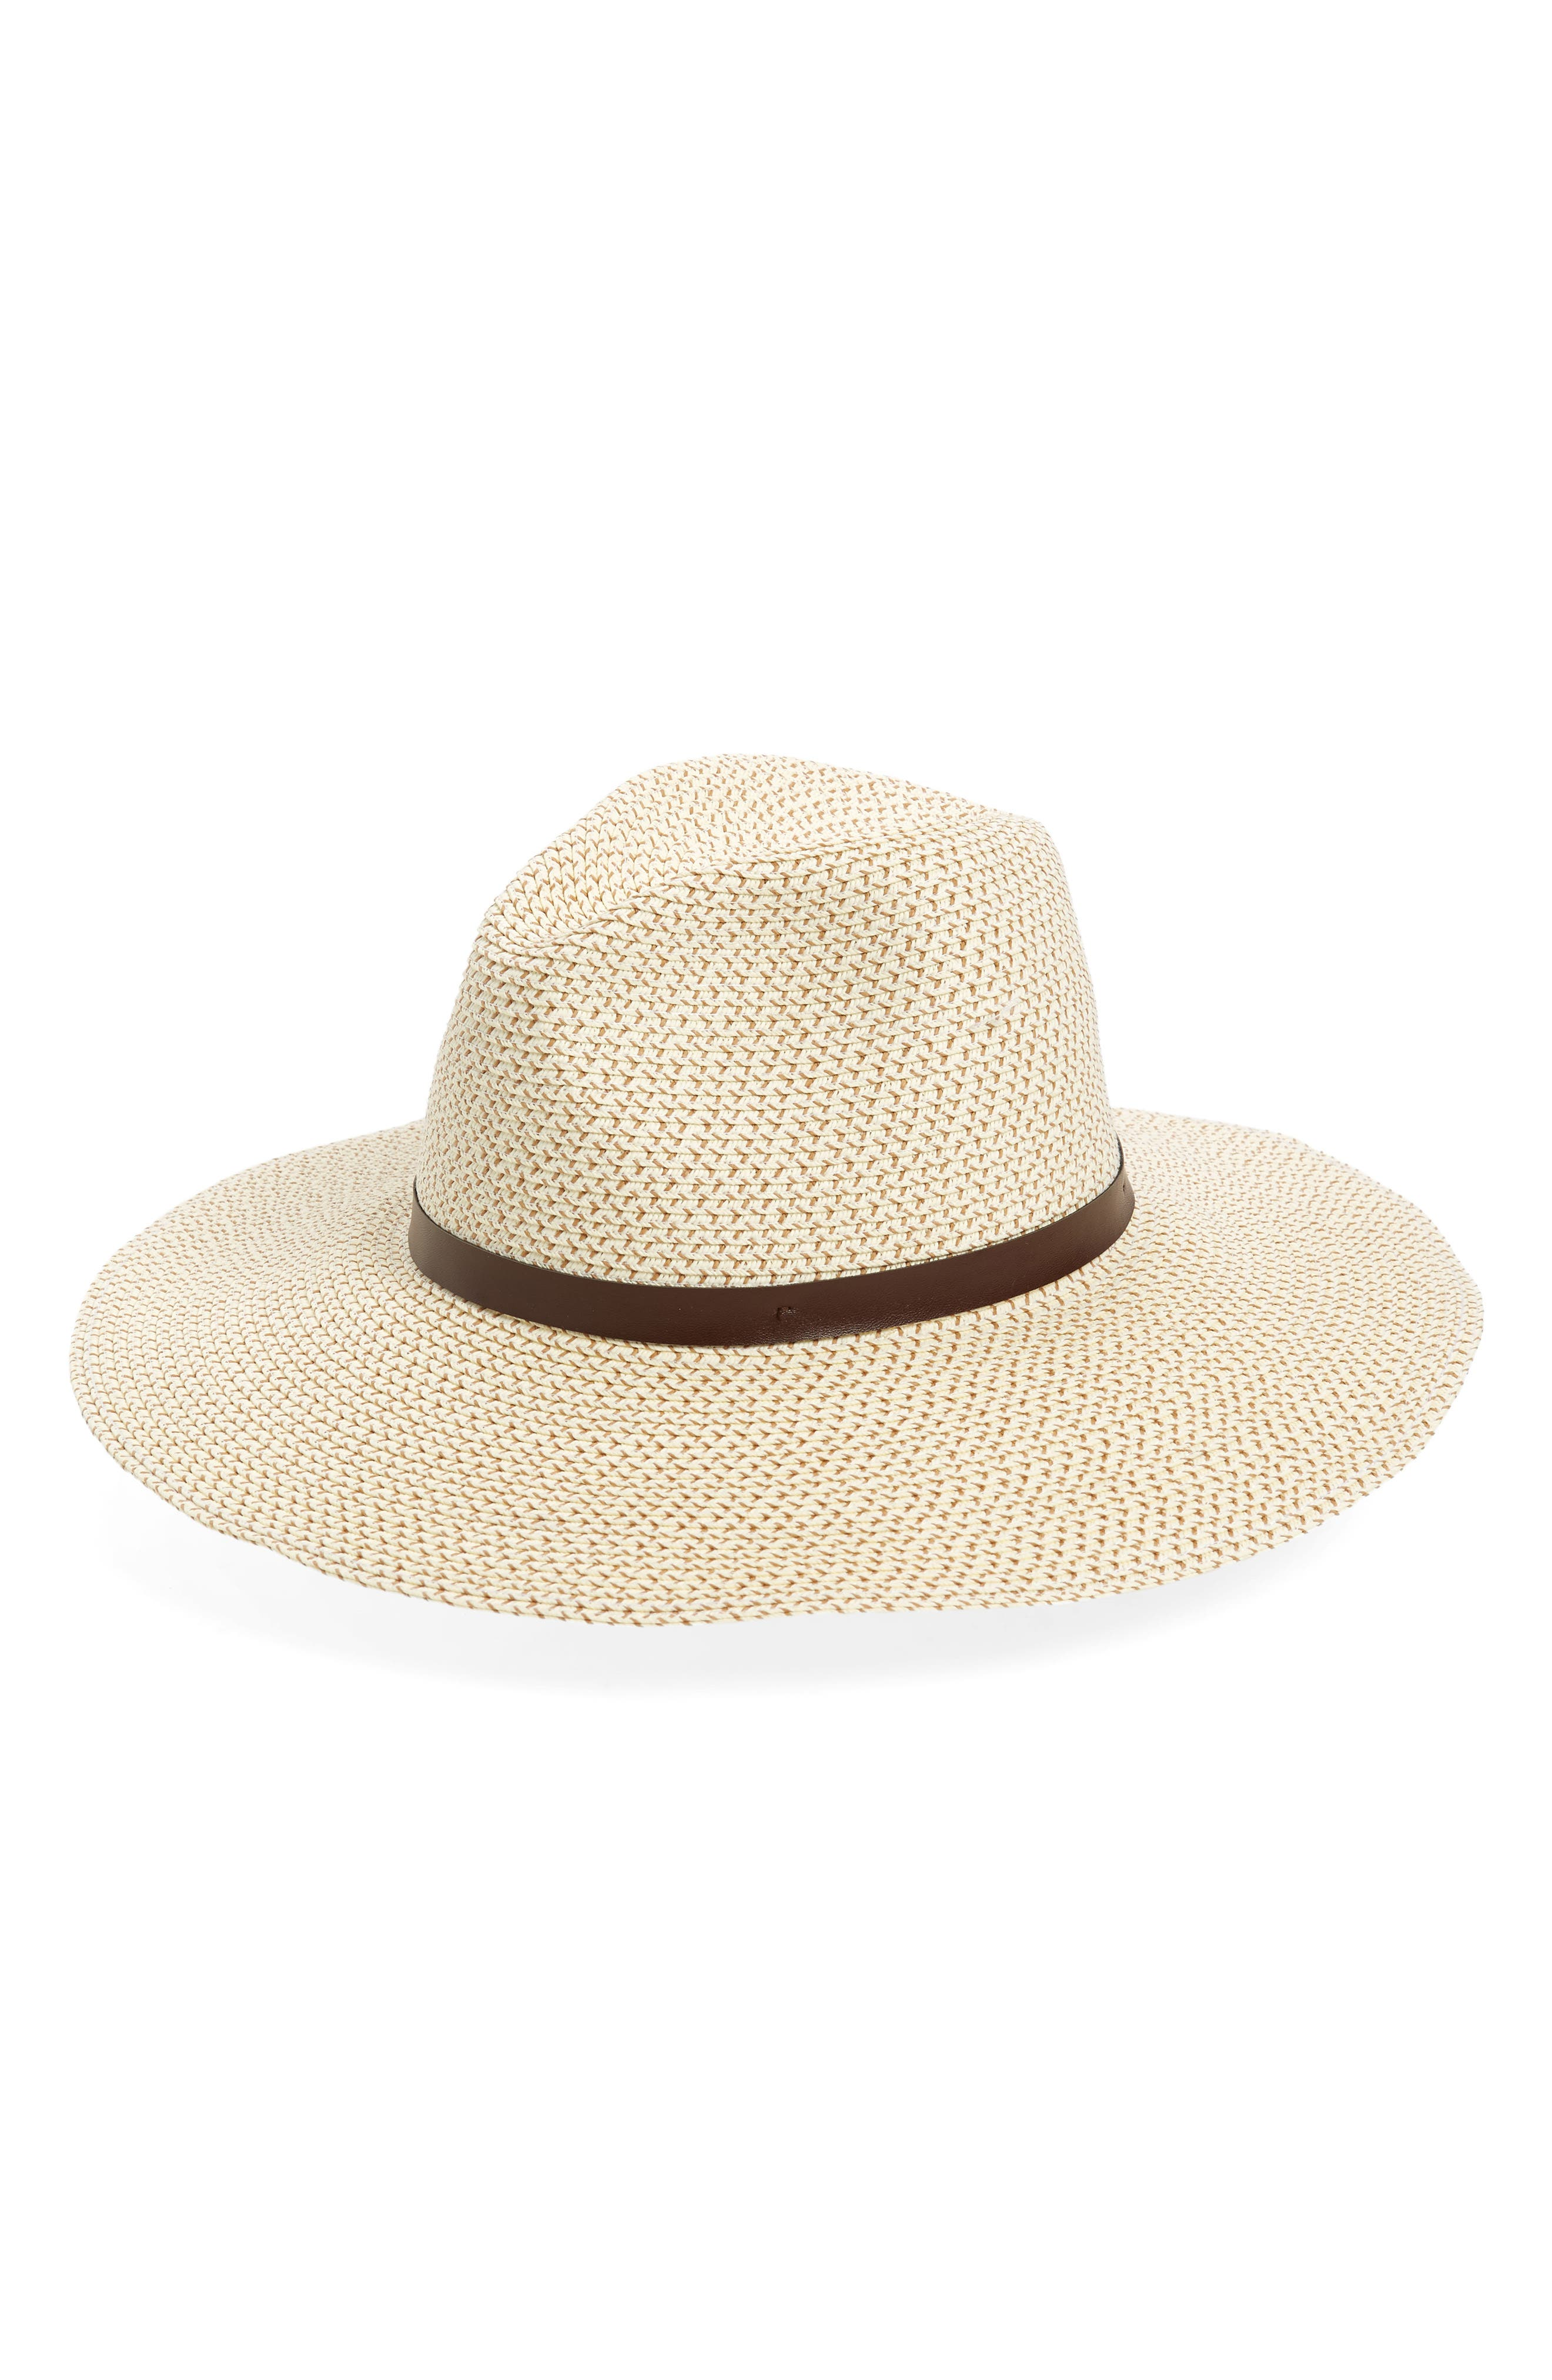 Band Straw Hat,                         Main,                         color, 901